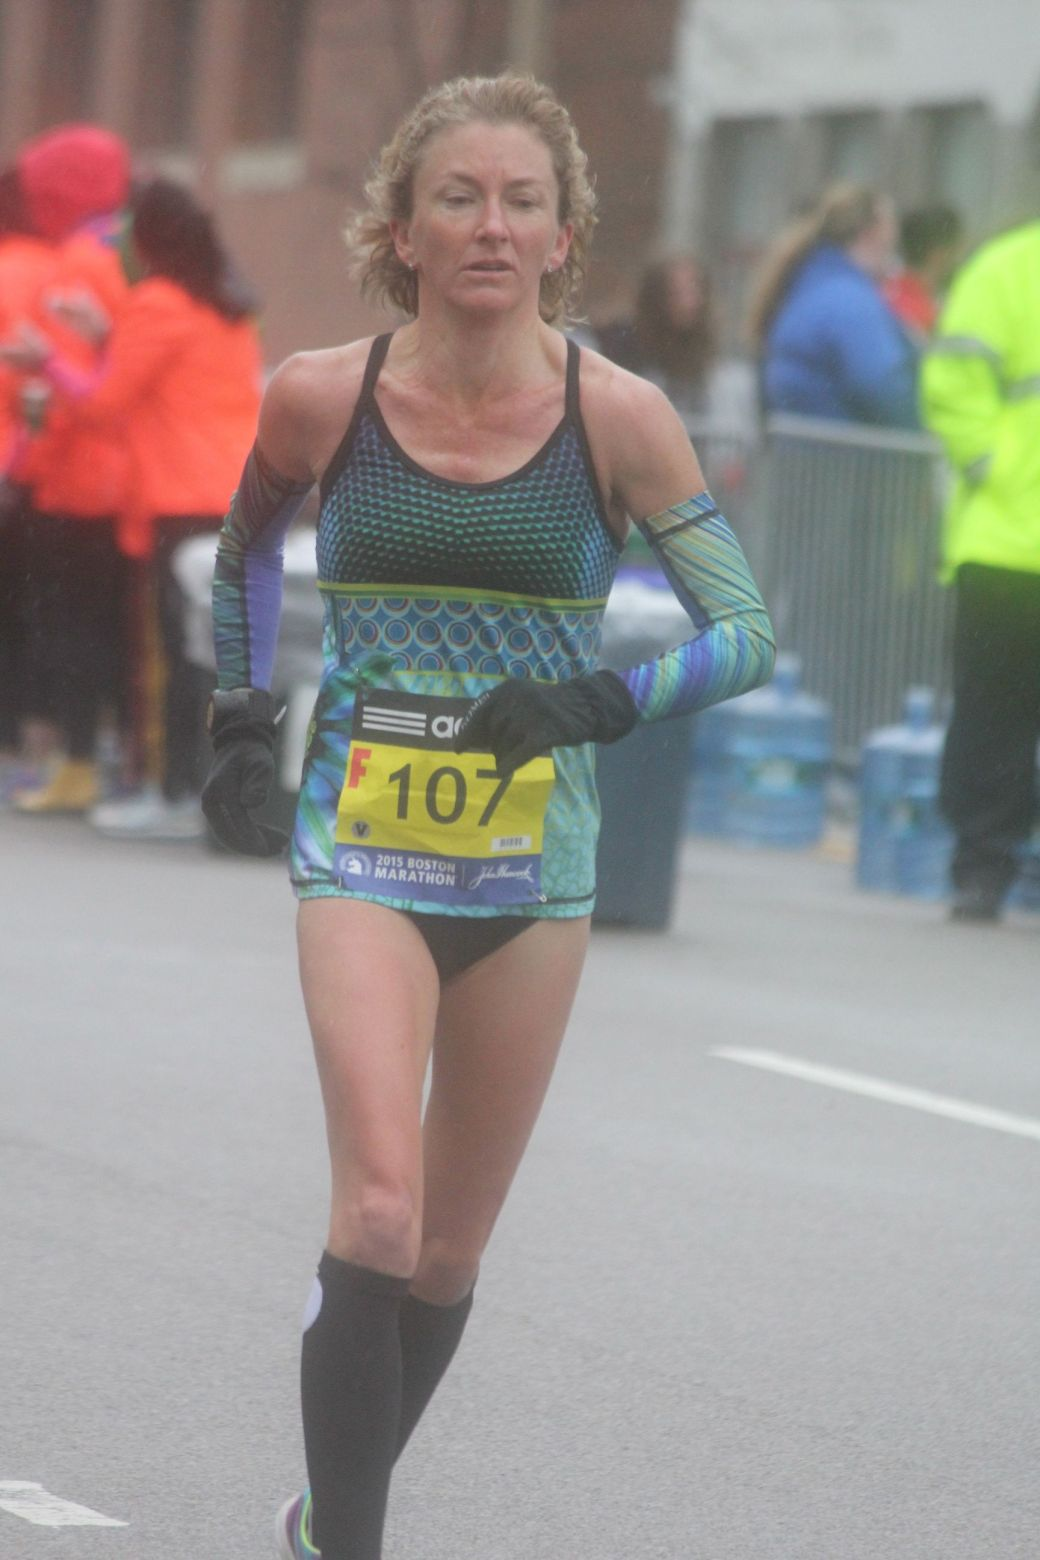 boston marathon april 20 2015 racer number 107